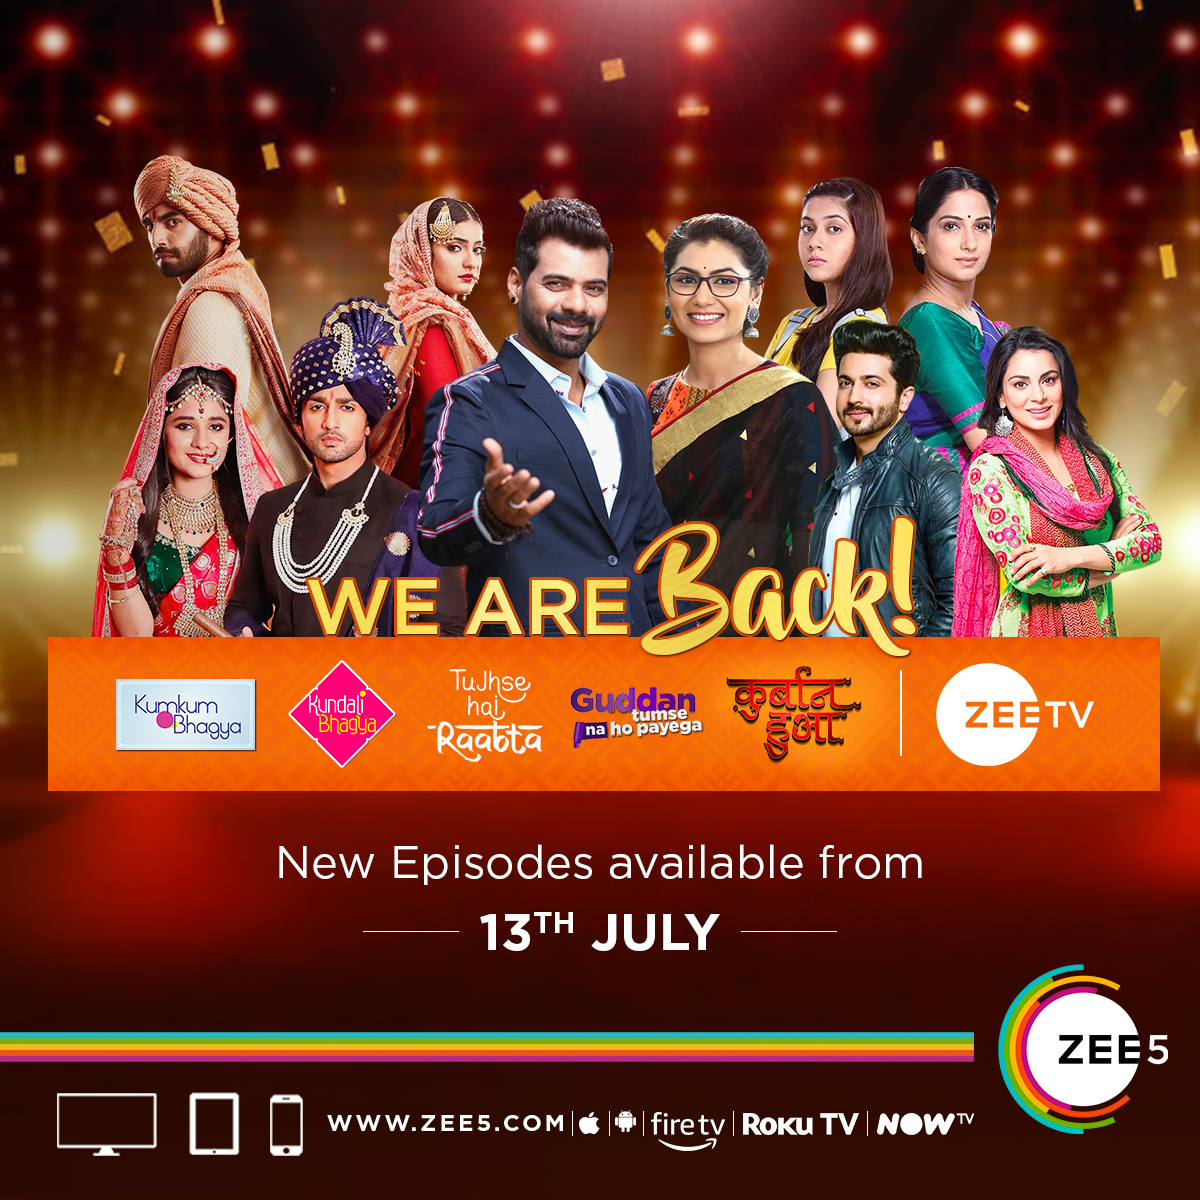 All-new episodes of Marquee TV shows back on air from 13th July on ZEE5 Global